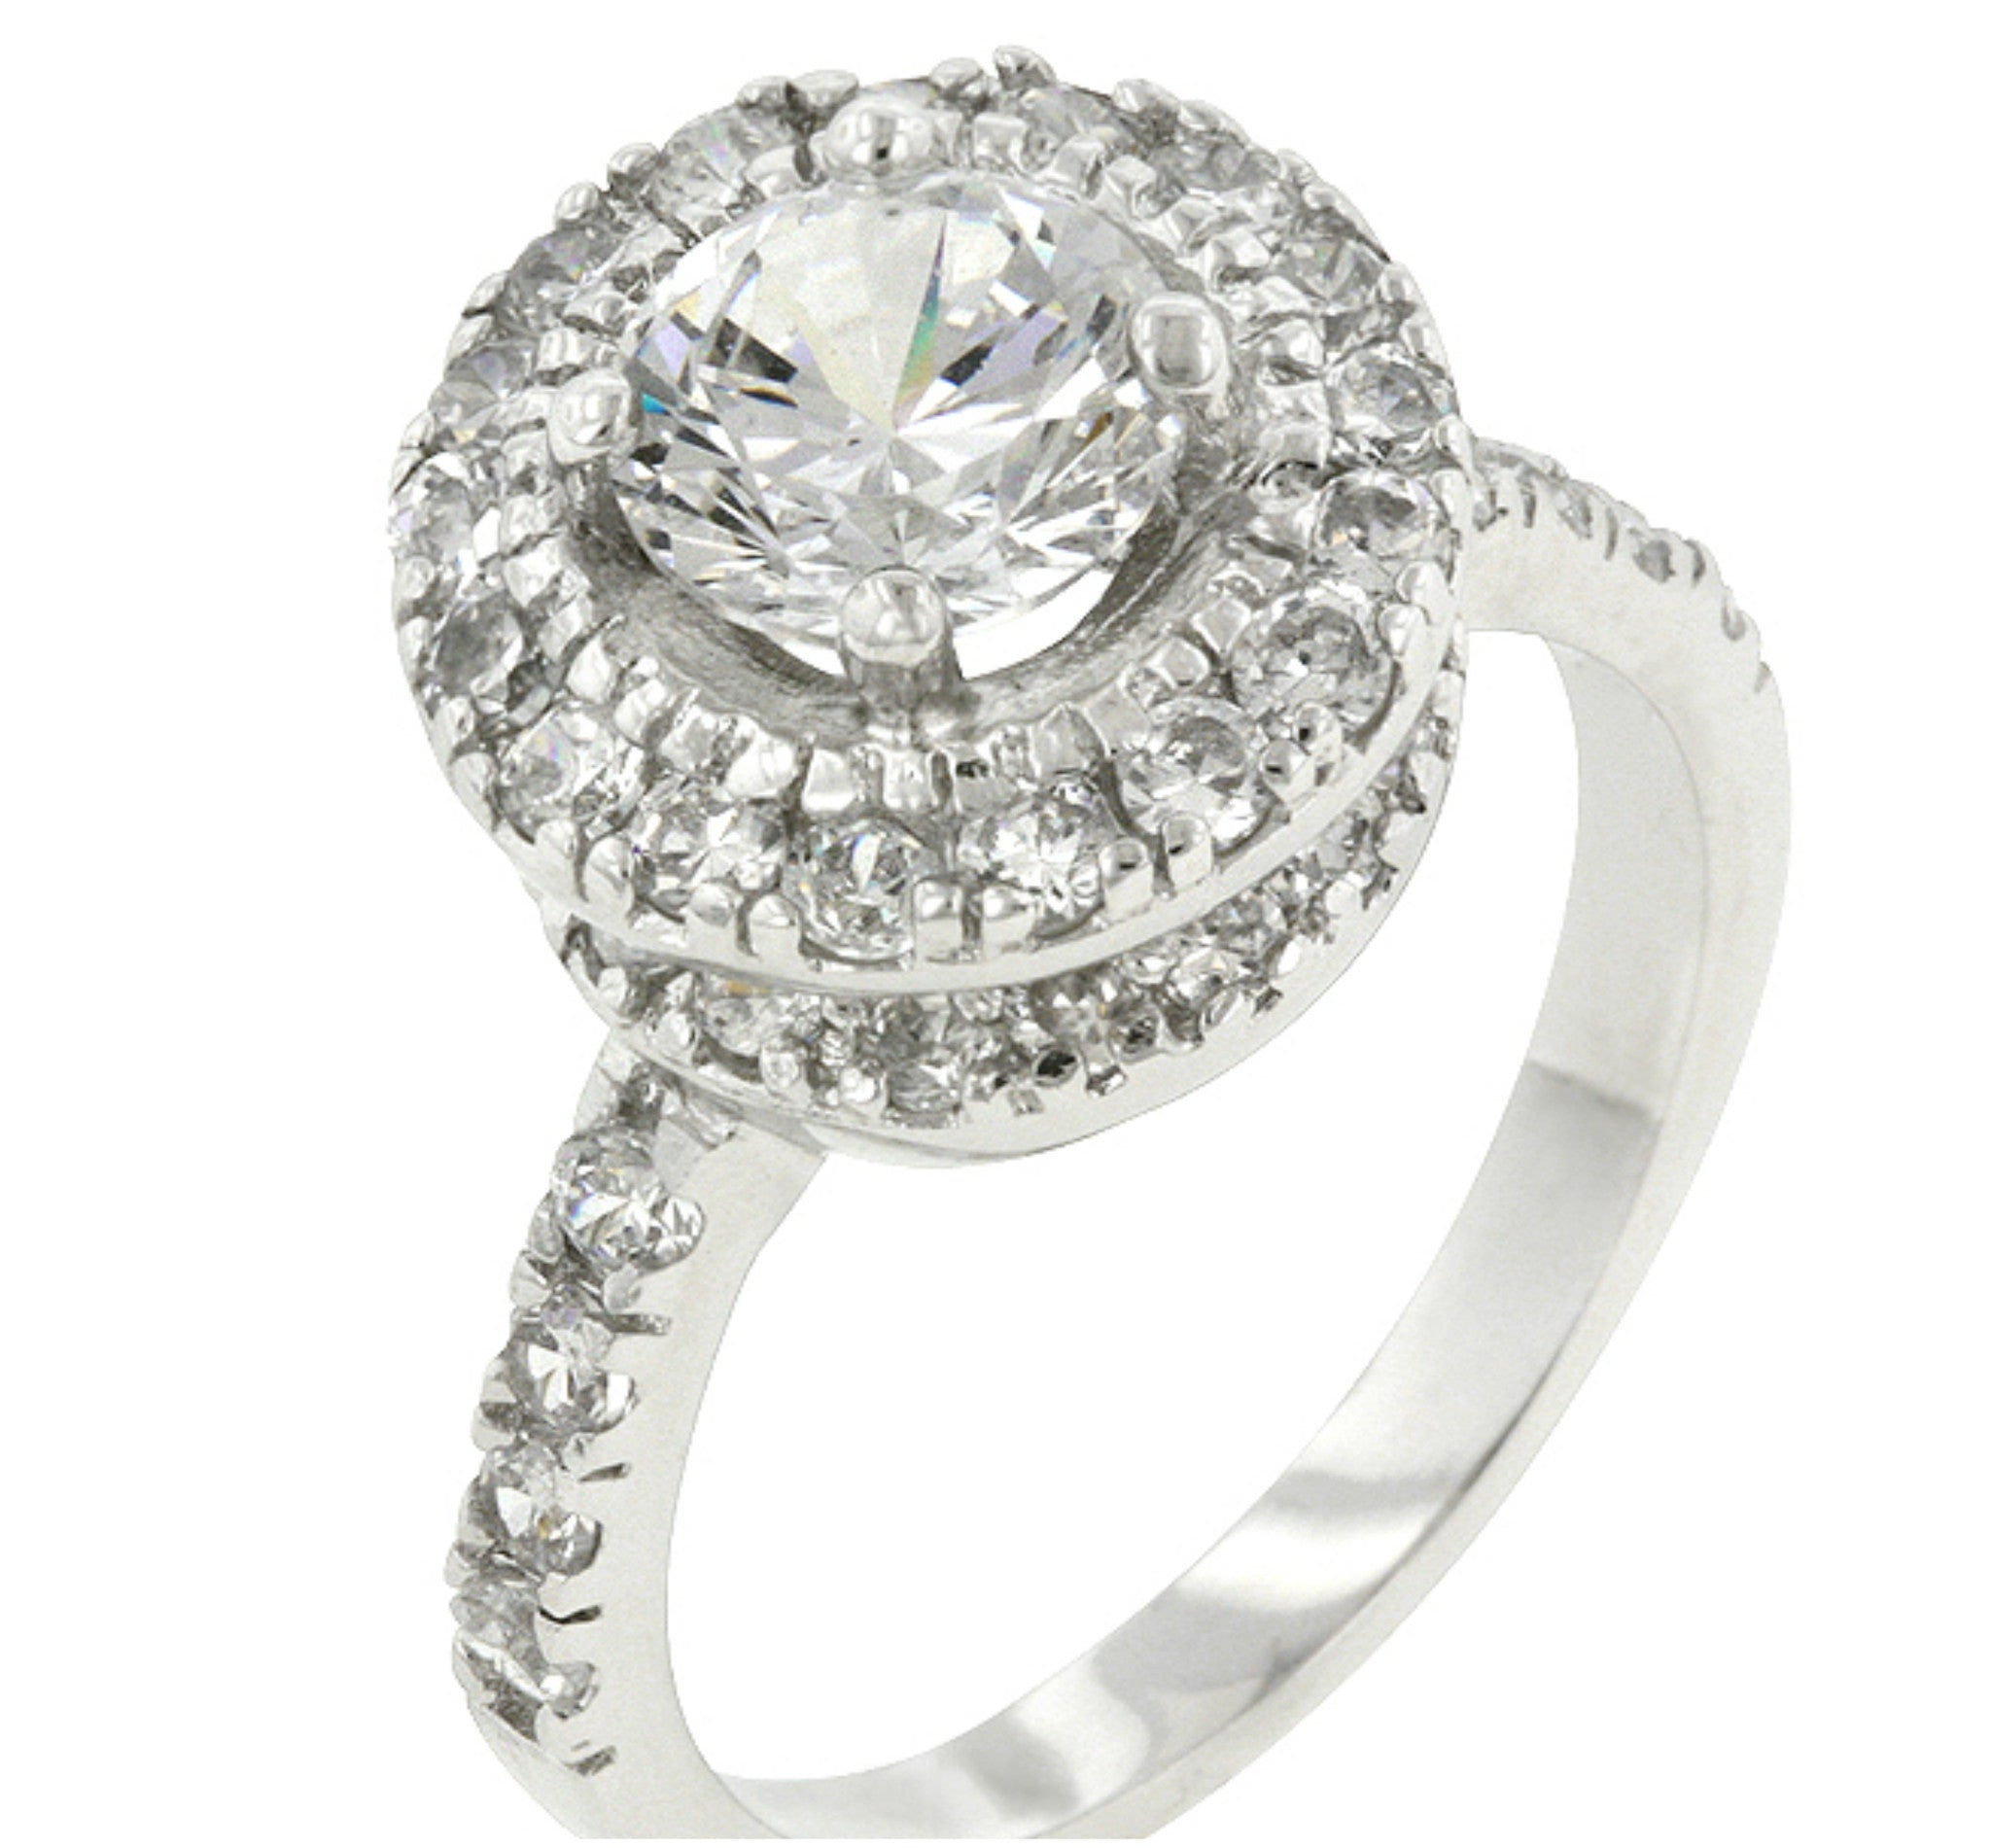 six solitaire r engagement jewels ring fullxfull w nxss product il j prong accents rings diamond